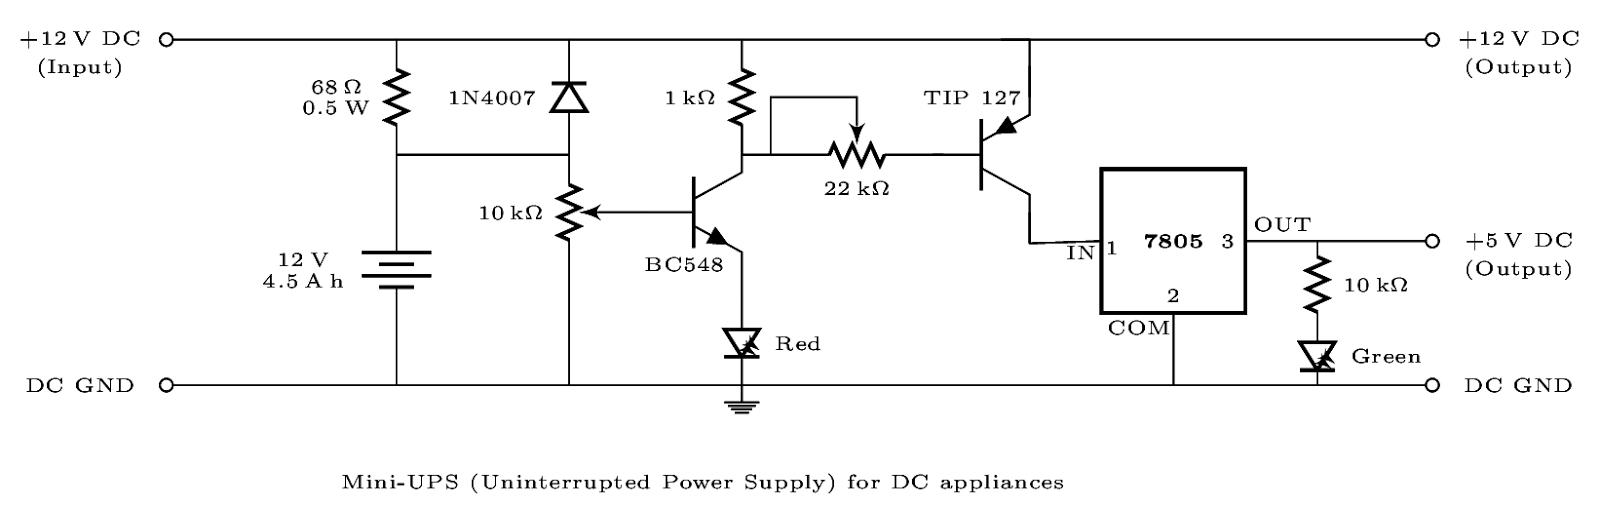 Technical musings drawing circuit diagrams in latex the latex code used to generate this diagram can be found at circuit ups on github a simple example of constructing a circuit diagram is ccuart